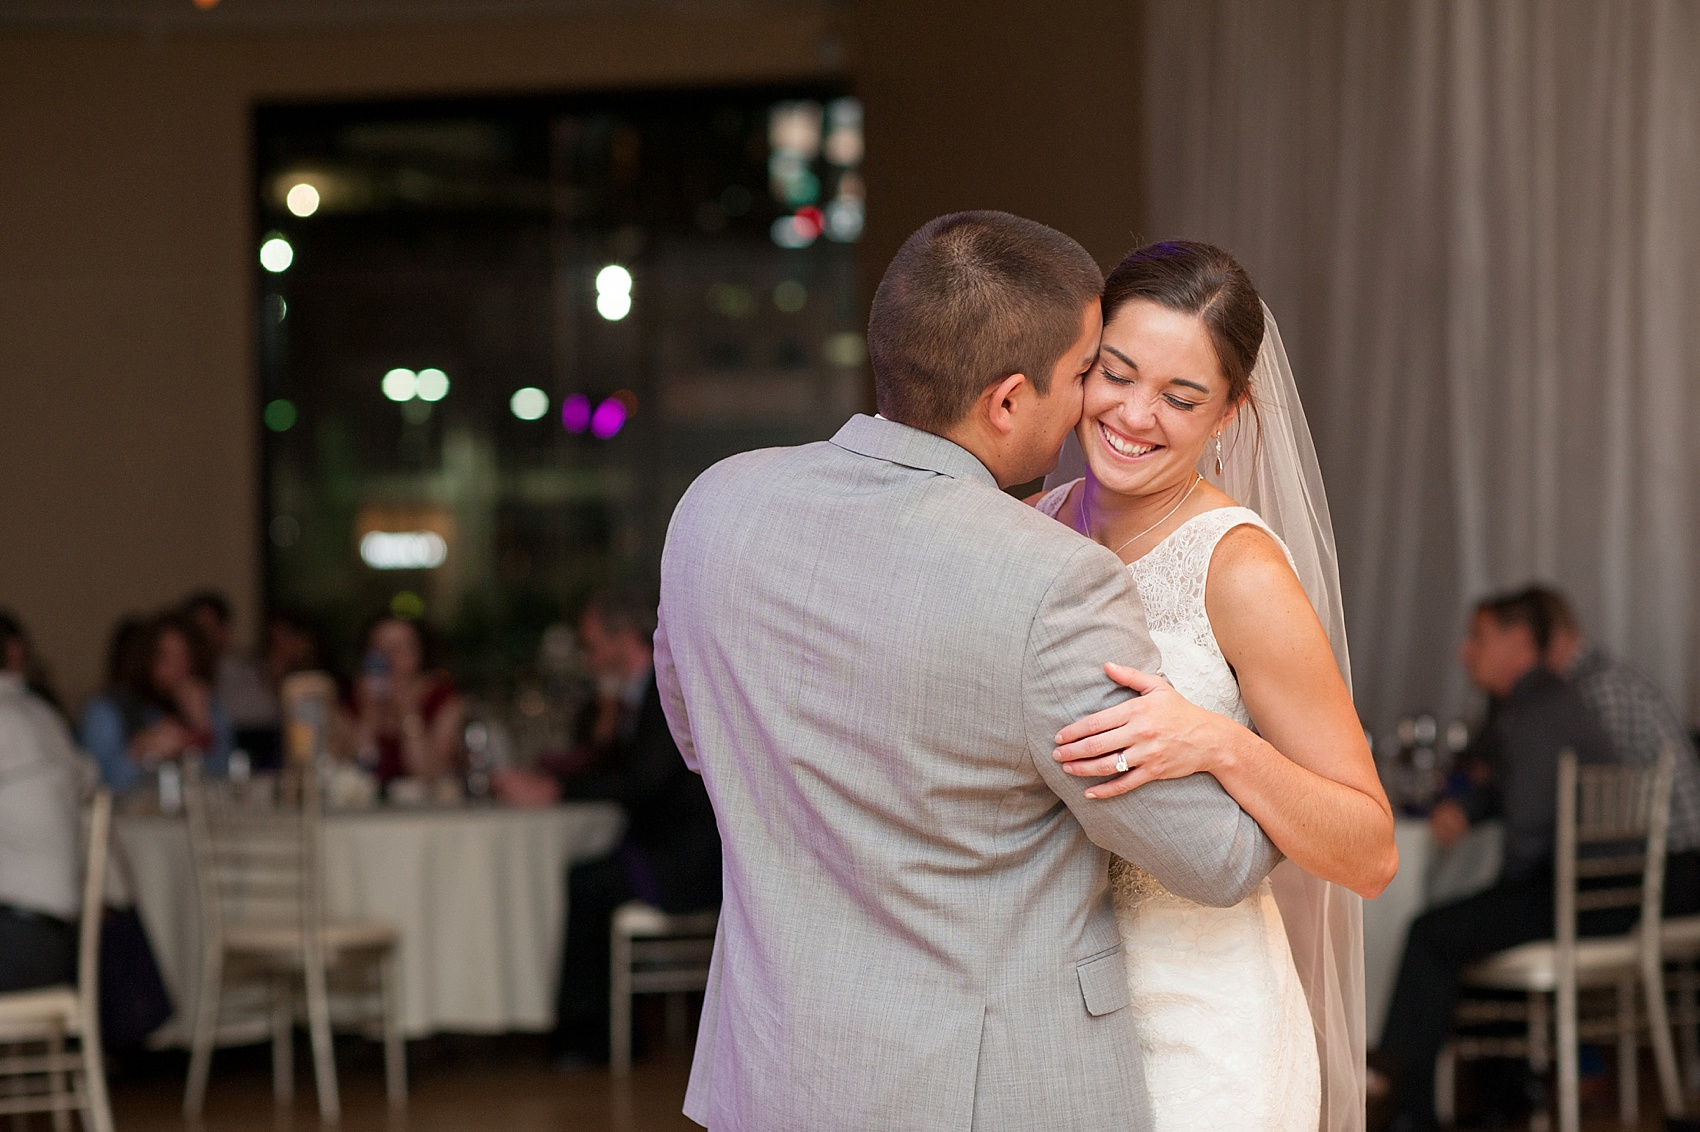 First dance for a wedding at The Center, downtown Cincinnati, Ohio. Photos by Mikkel Paige Photography.